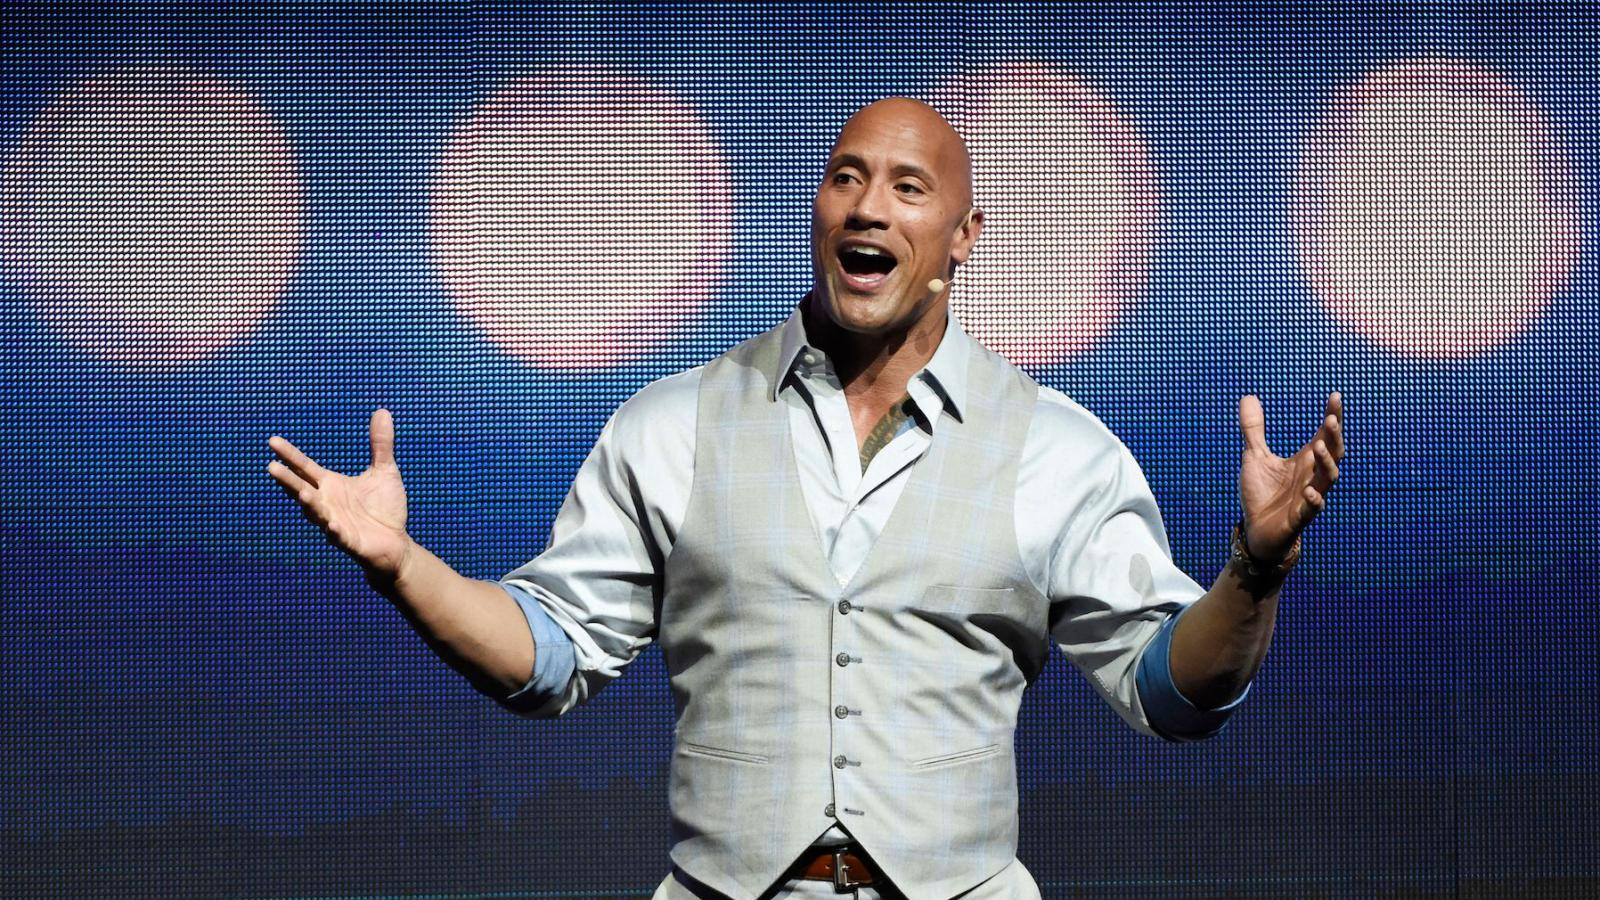 Netflix's first movie with The Rock could be its biggest